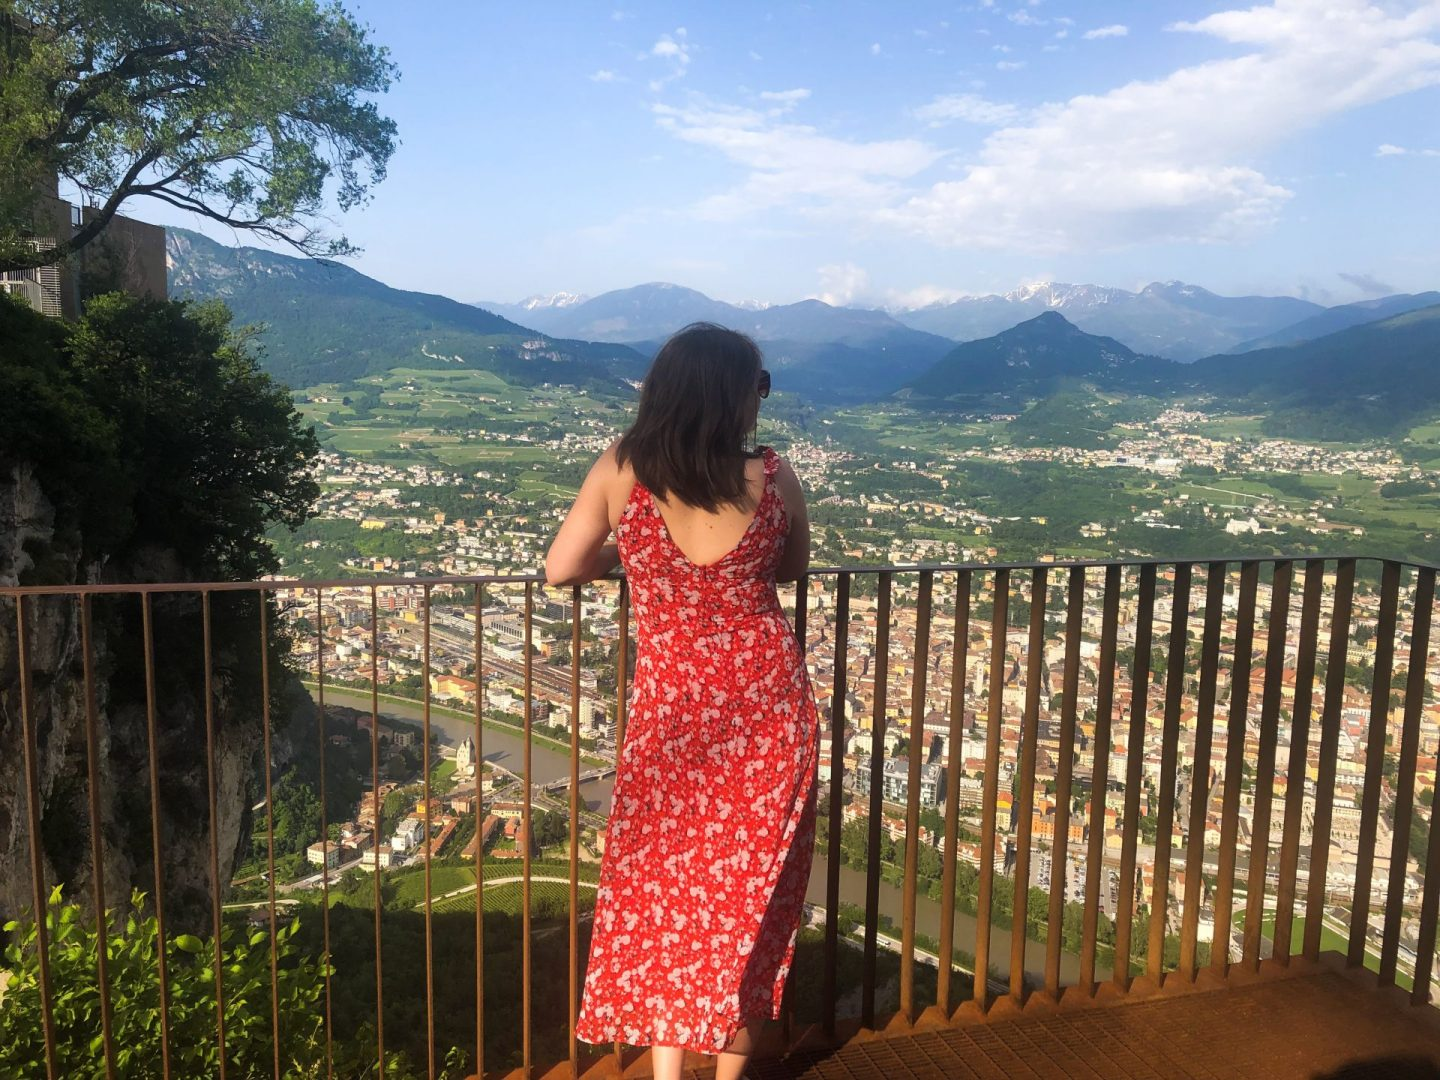 cheap european city break - Nell at the top of the cable car in Trento, Trentino, facing away from the camera and admiring the views of the town below and the mountains in the background. She's wearing a red flowing dress.